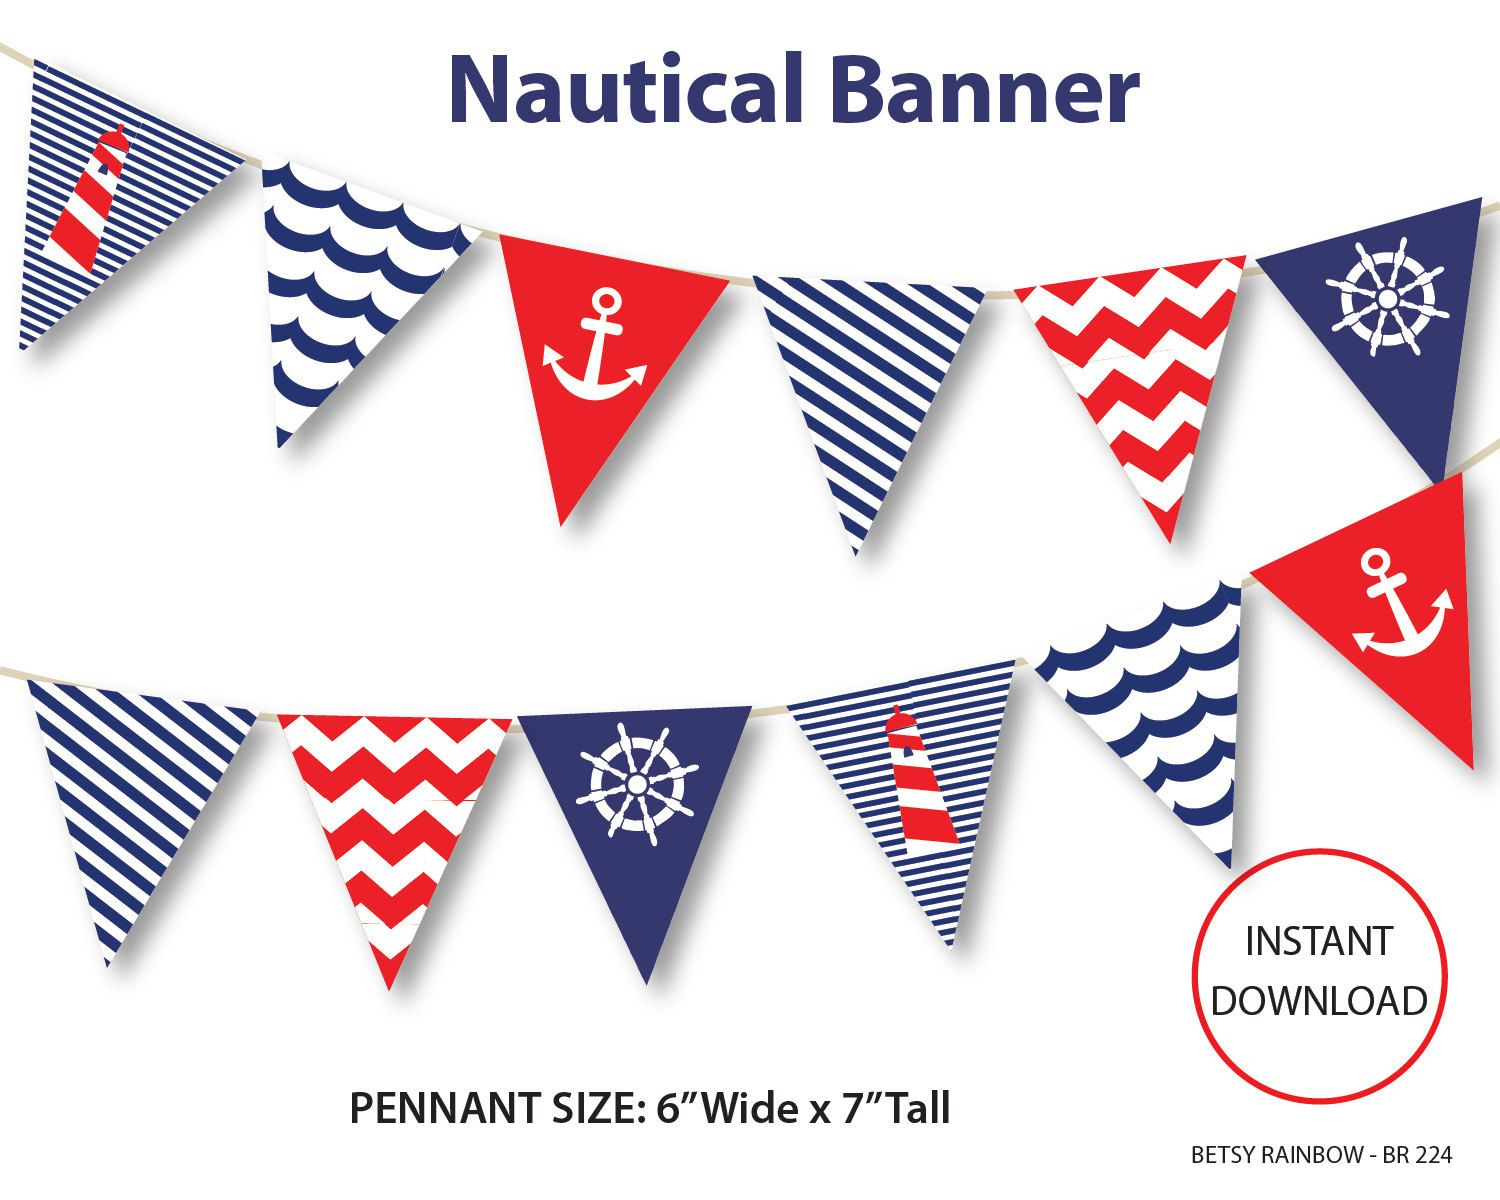 Nautical banner printable banner nautical diy party navy blue nautical bunting pennants br for Printable pennant banner